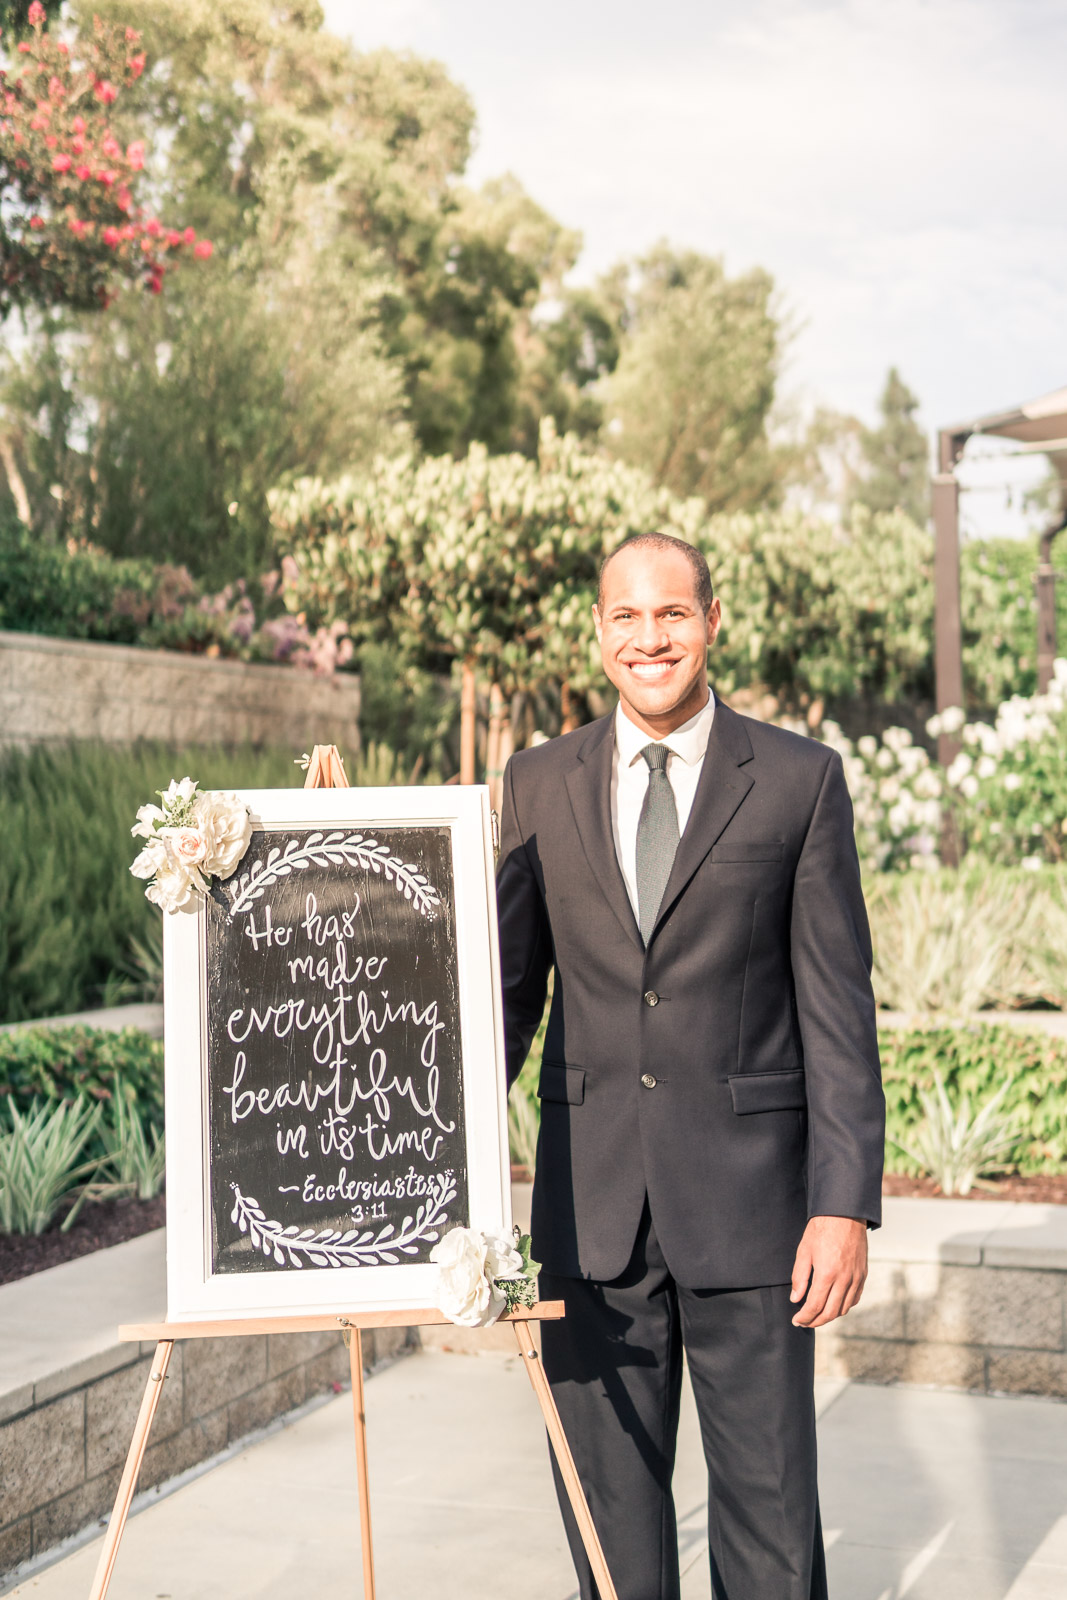 106_Angel-Brea-Orange-County_Joseph-Barber-Wedding-Photography.jpg